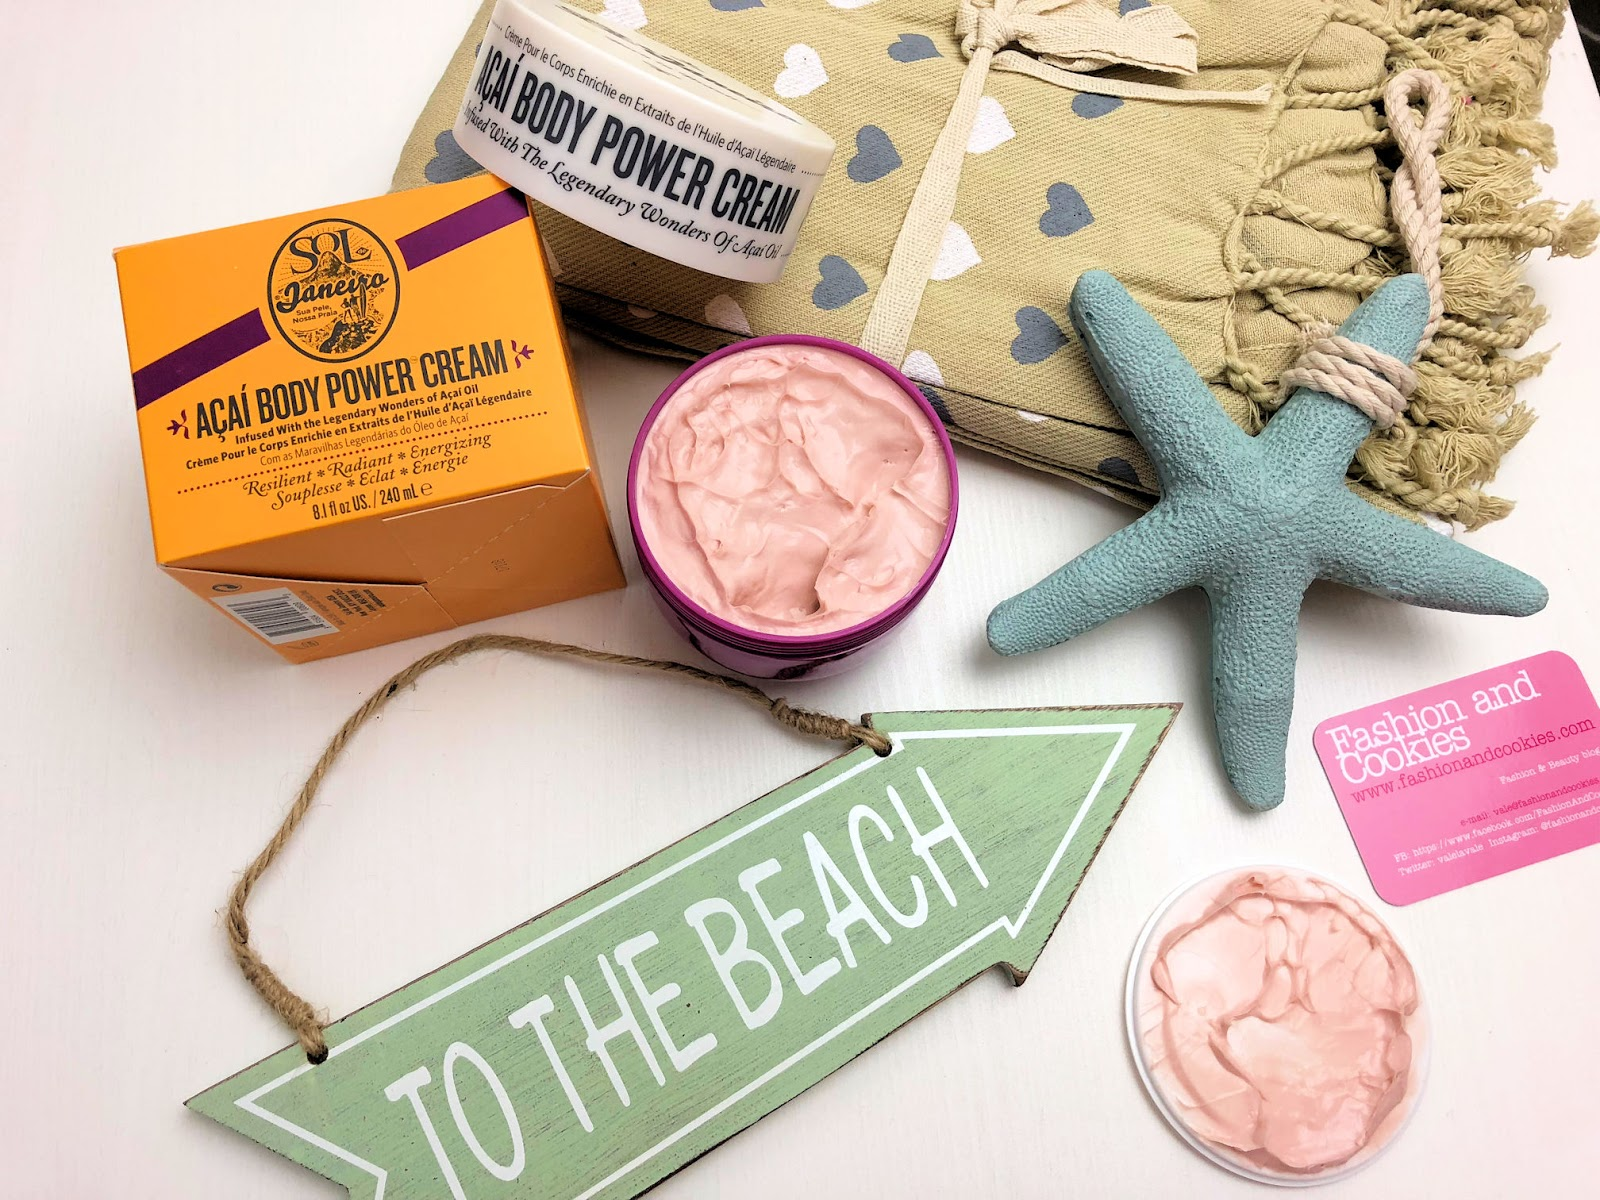 Sol de Janeiro skincare: must have products on Fashion and Cookies beauty blog, beauty blogger